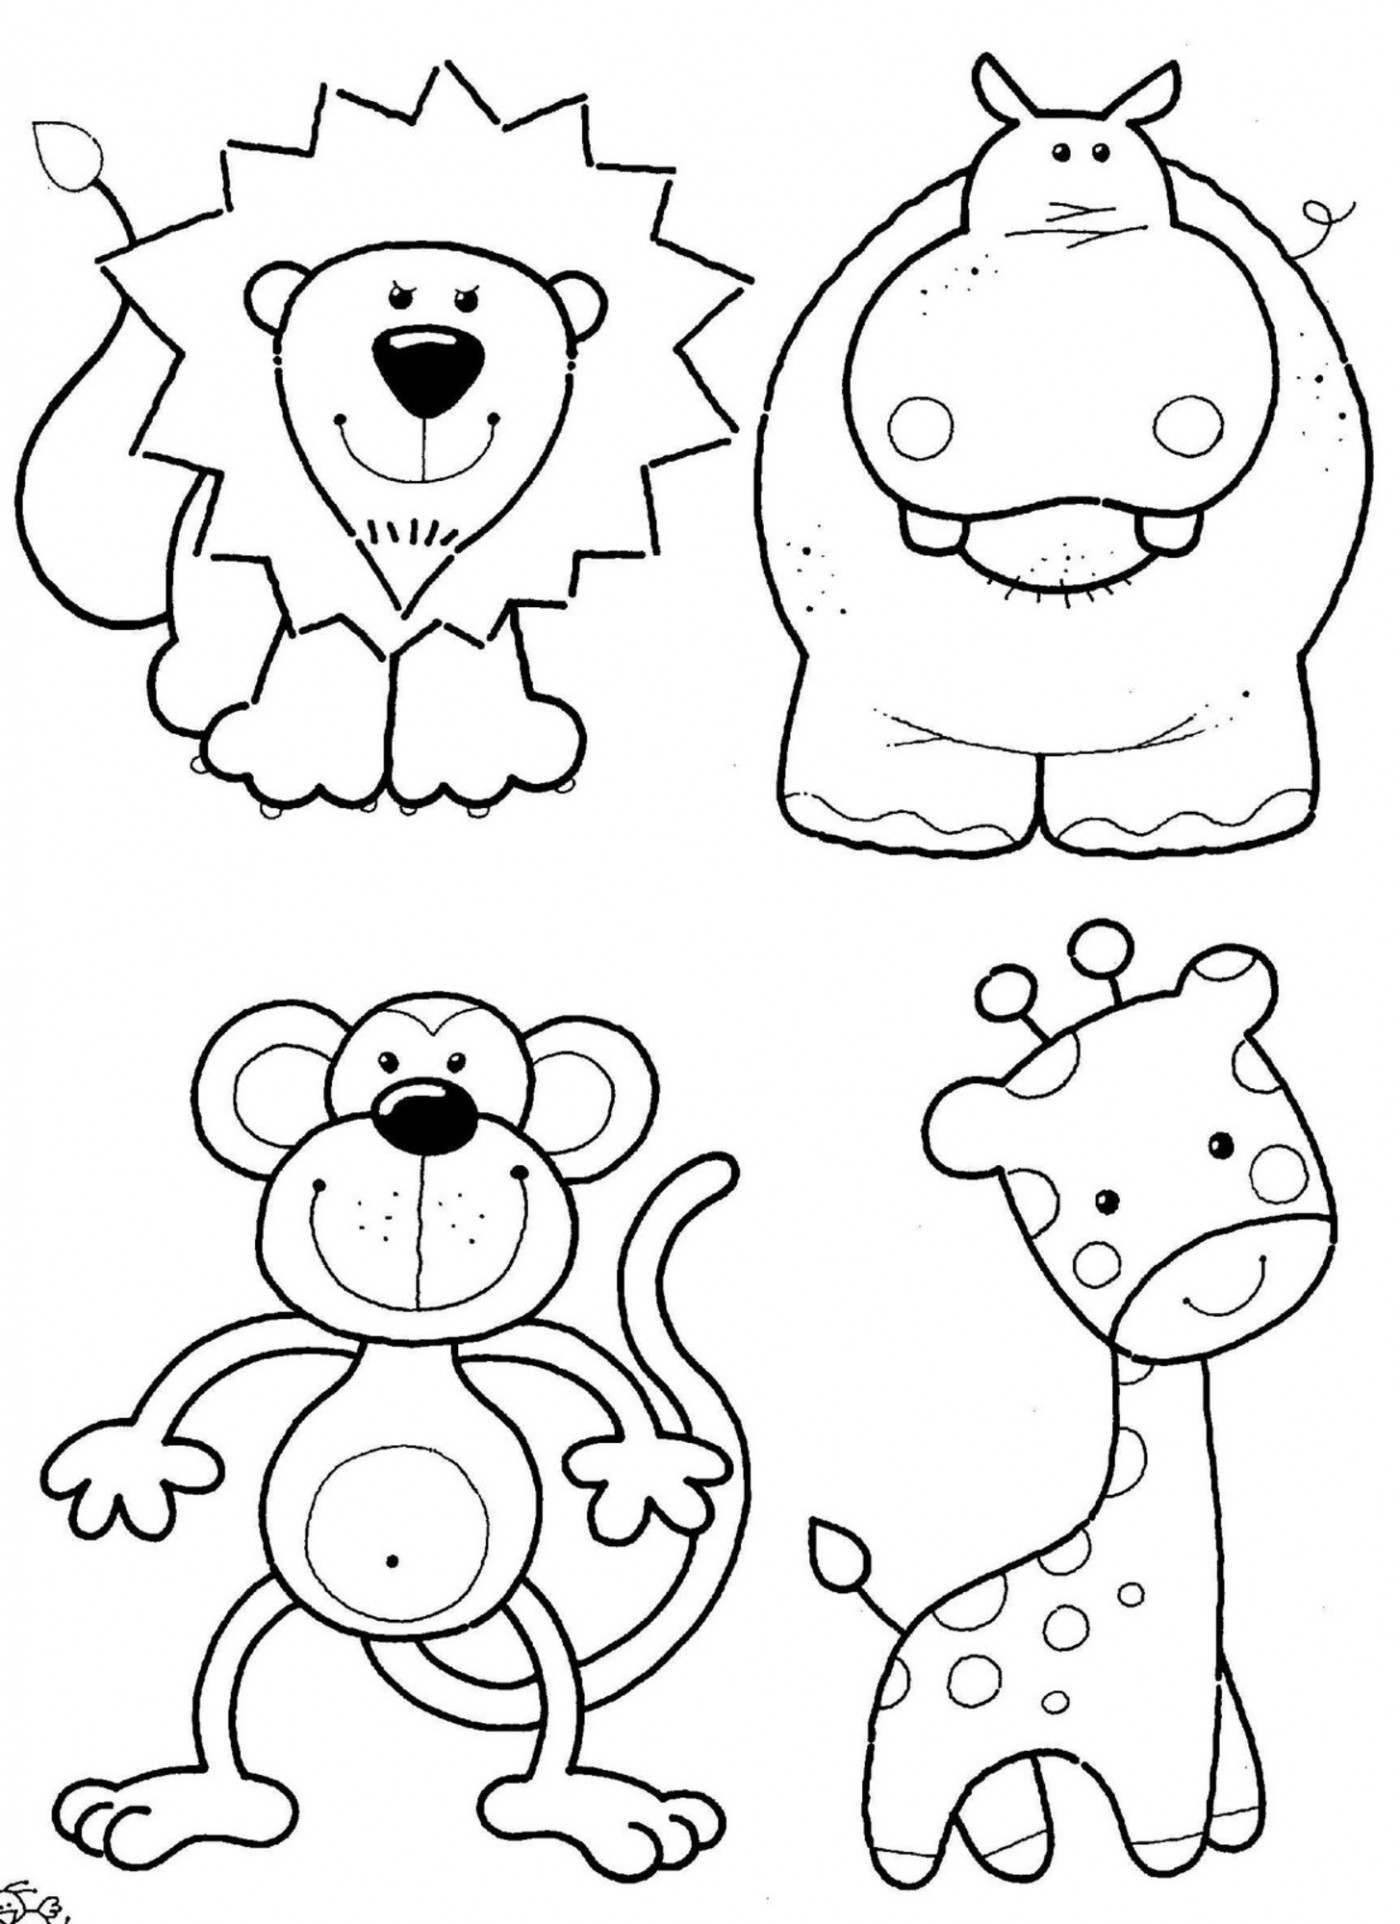 animal coloring pages - Coloring Animals For Kids